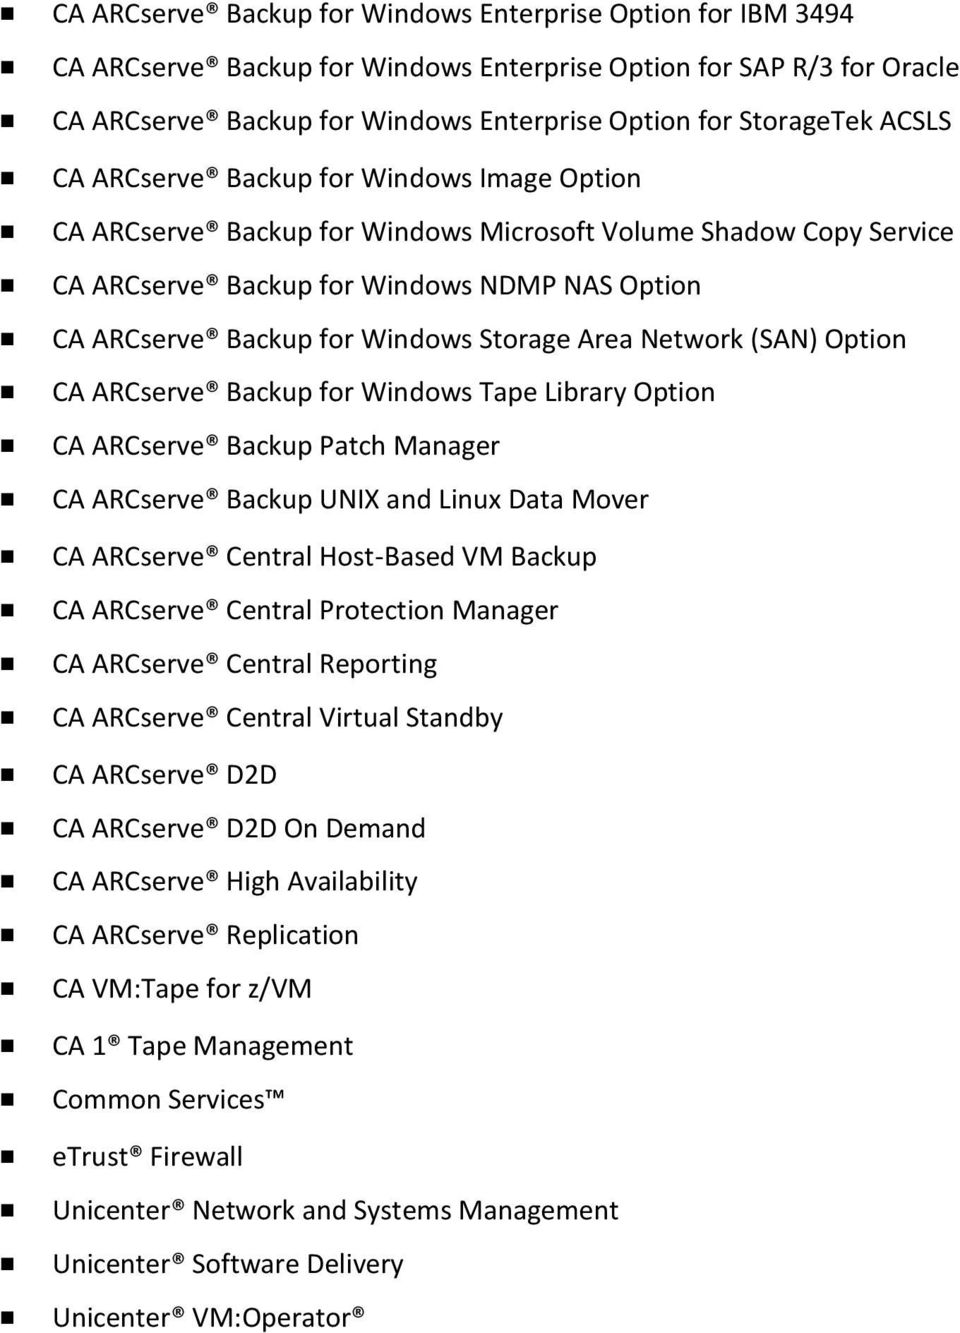 Storage Area Network (SAN) Option CA ARCserve Backup for Windows Tape Library Option CA ARCserve Backup Patch Manager CA ARCserve Backup UNIX and Linux Data Mover CA ARCserve Central Host-Based VM